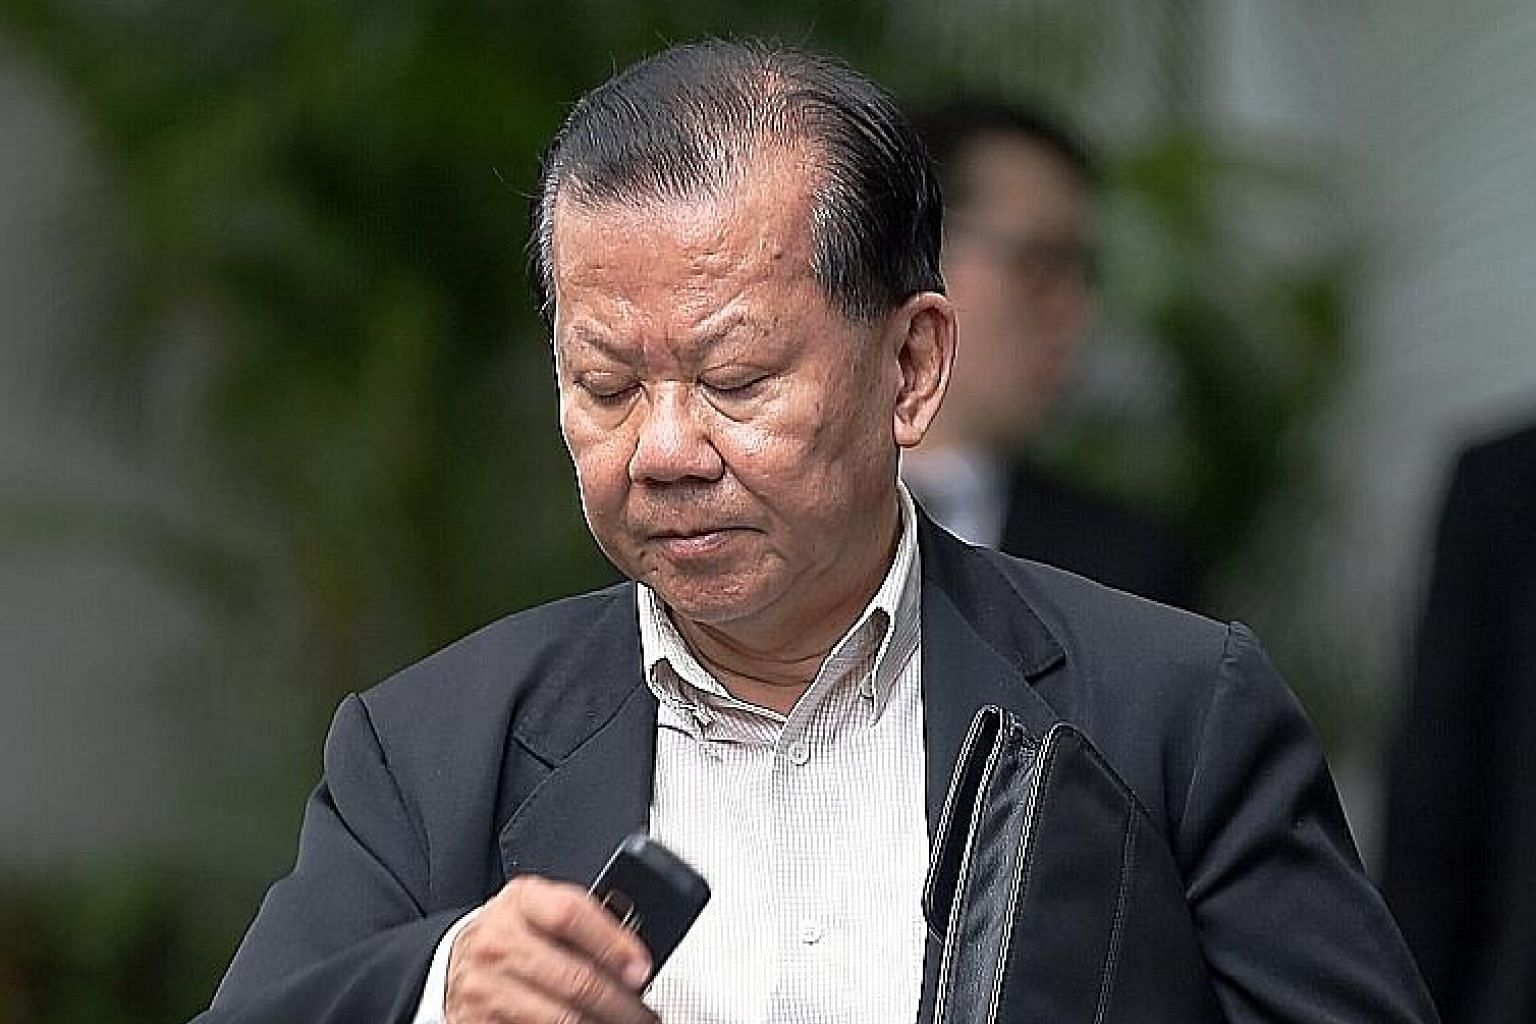 Wong Kok Keong invited three shareholders of Manor Construction to invest in a project and also duped them into agreeing to buy shares in a company. He encashed the cheques they gave him,